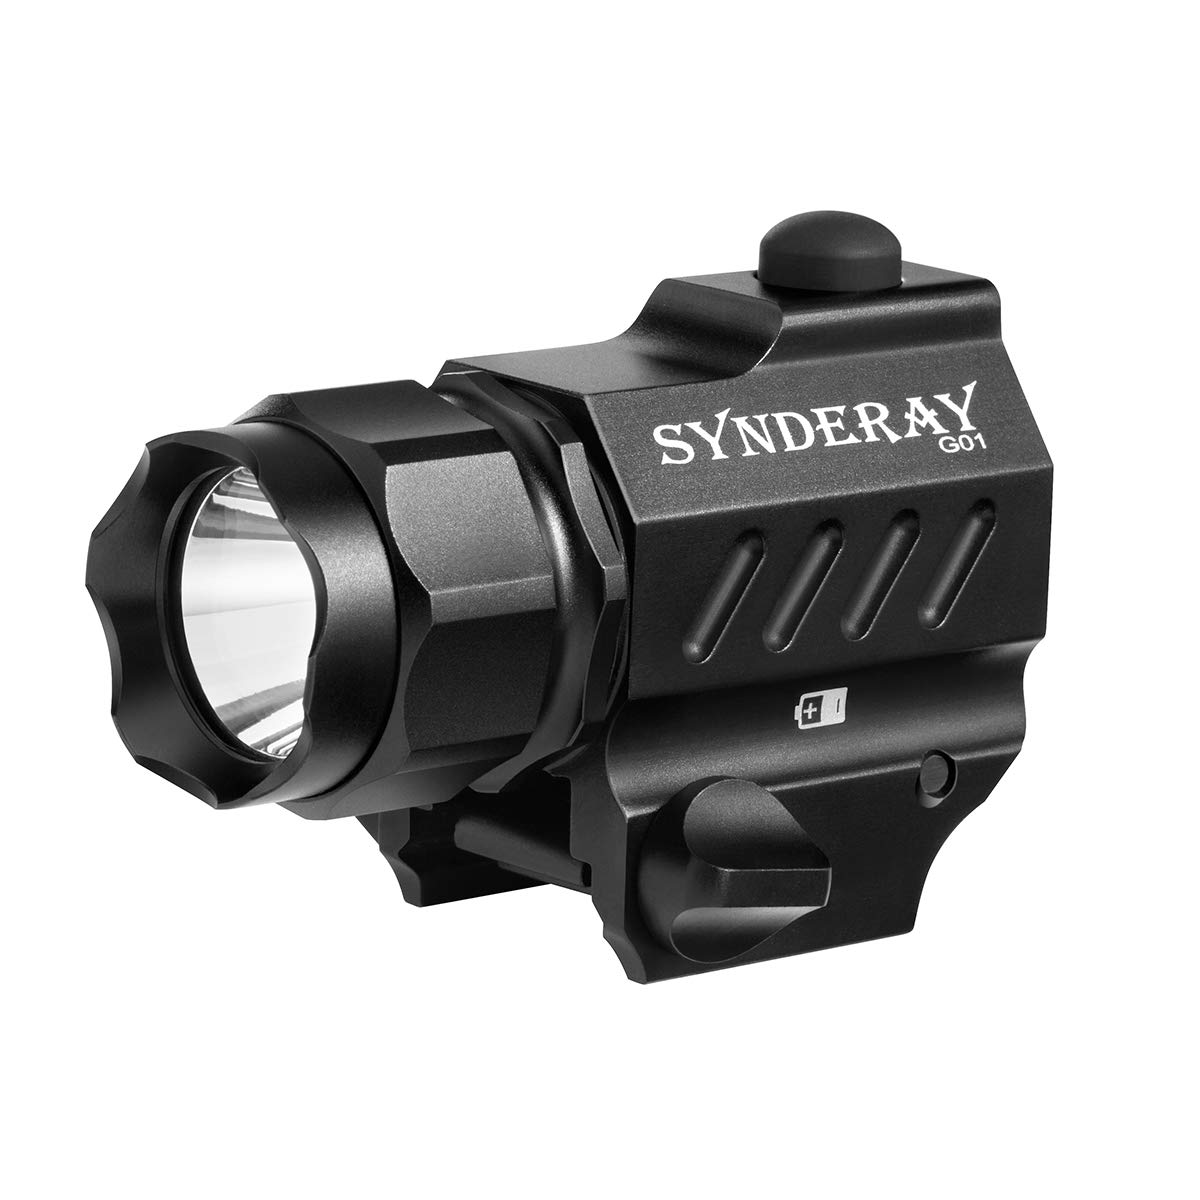 SyndeRay G01 CREE LED Tactical Gun Flashlight 2-Mode 230LM Pistol Handgun Torch Light for Hiking,Camping,Hunting and Other Indoor/Outdoor Activities by SyndeRay